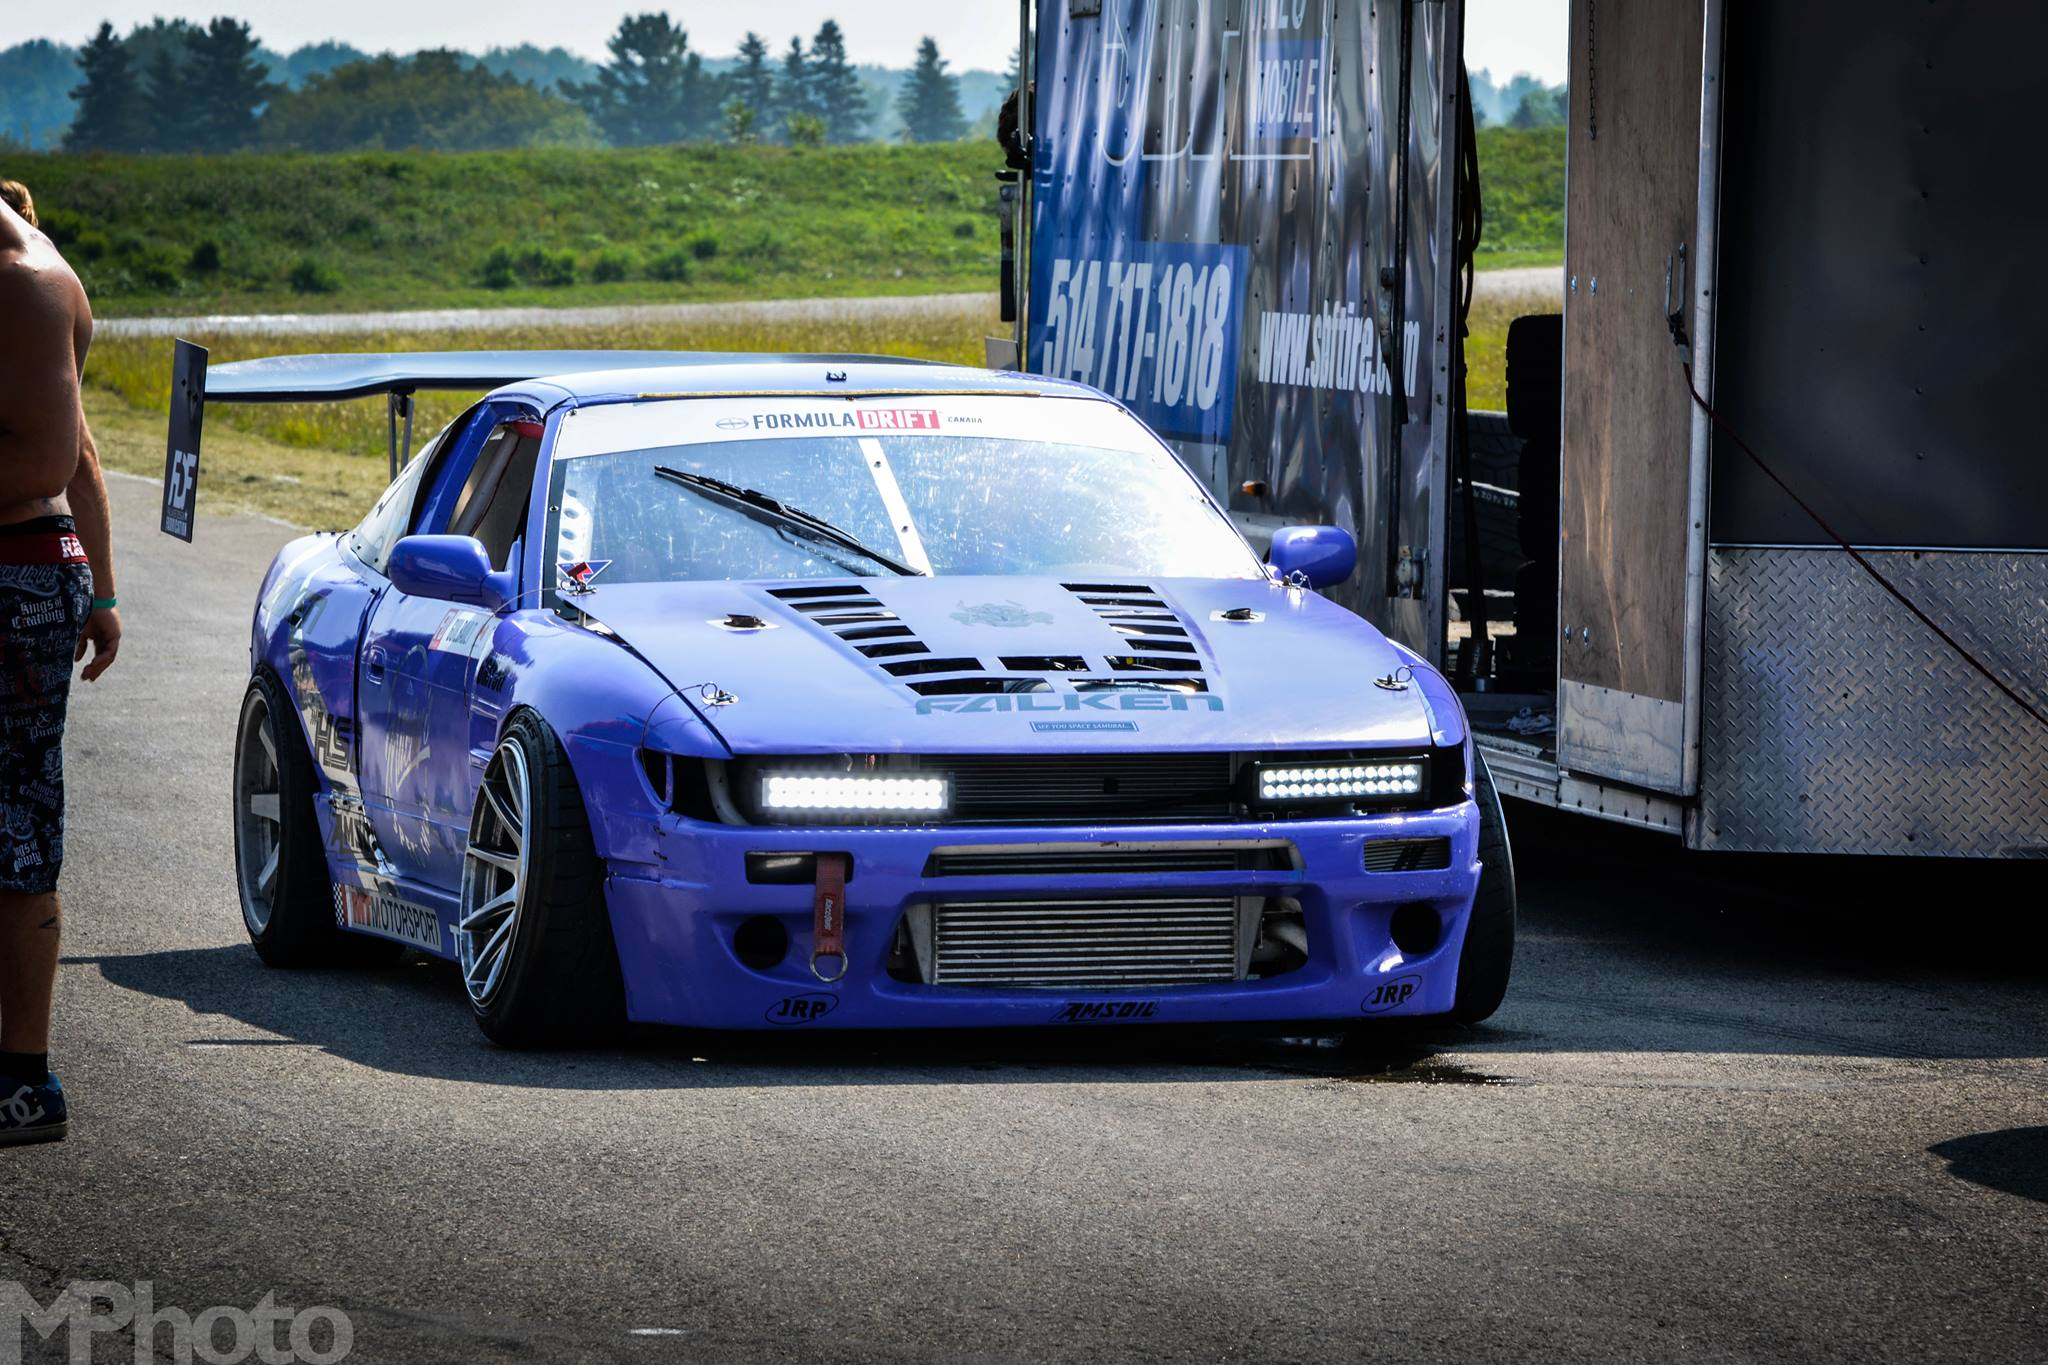 Drift Car Wallpaper Hd 1989 Nissan 240sx With Ls Turbo For Sale In Toronto 25000